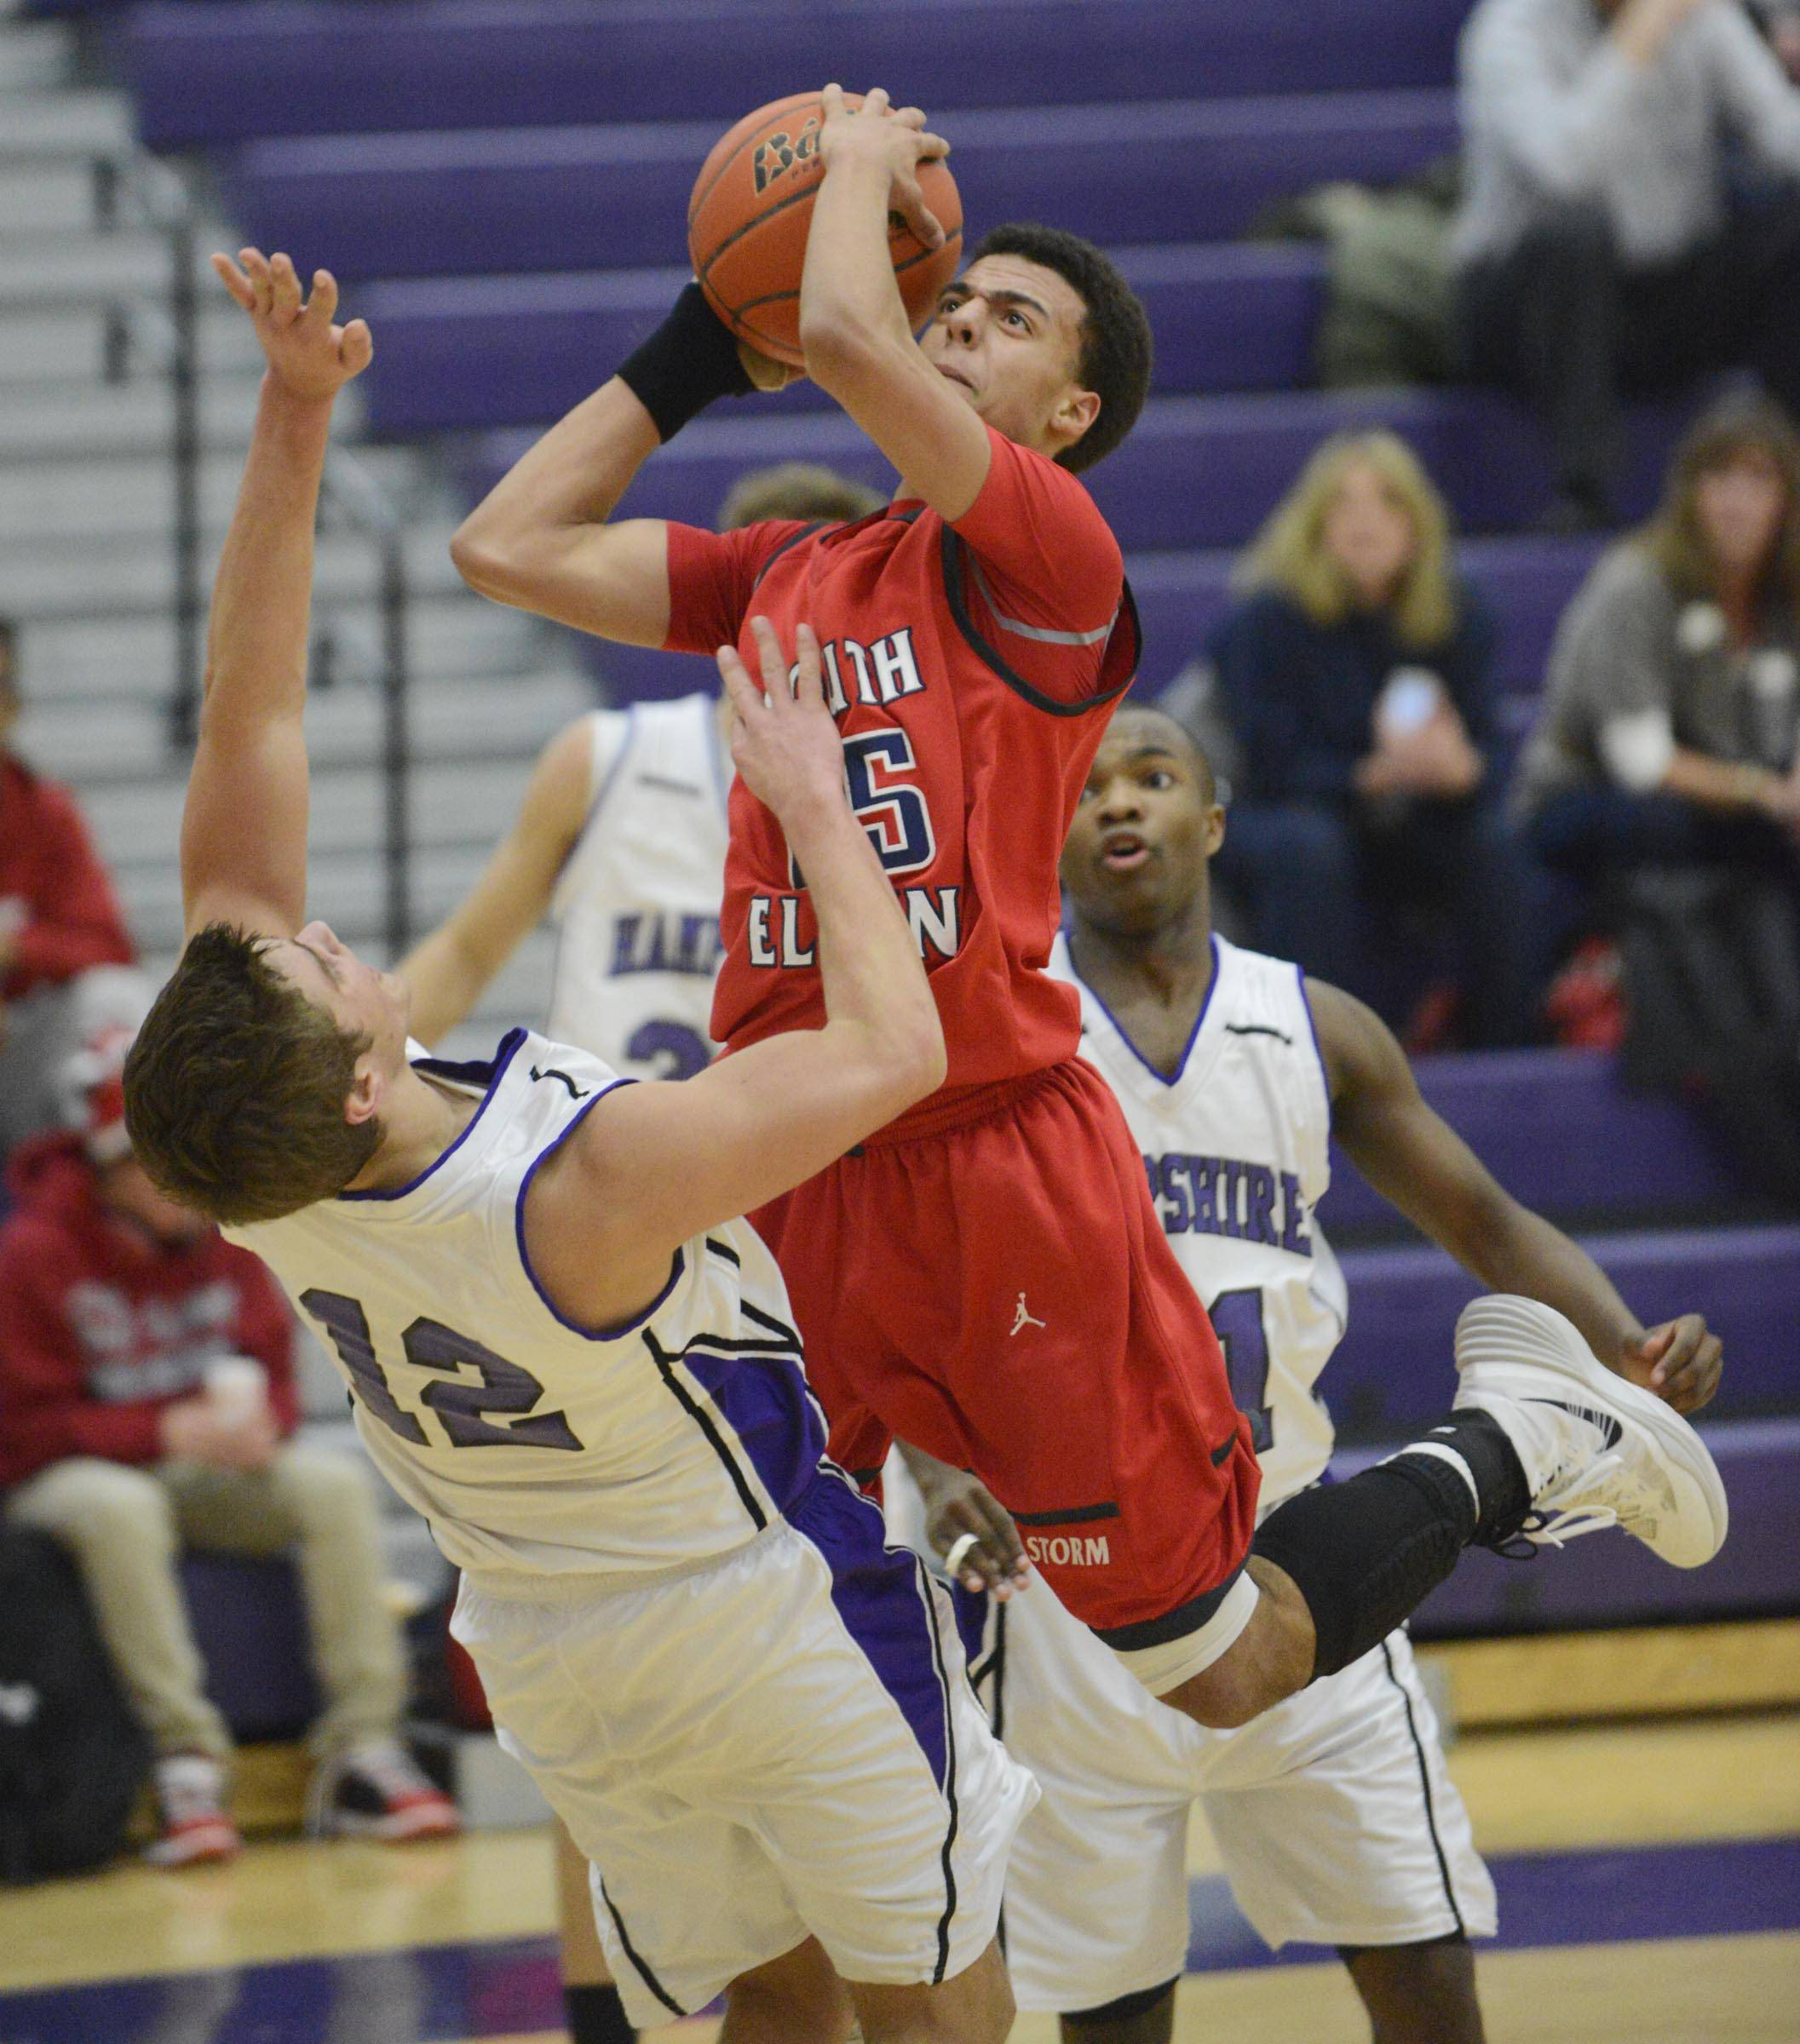 South Elgin's Darius Wells is called for a charge as he runs into Hampshire's Matthew Bridges.